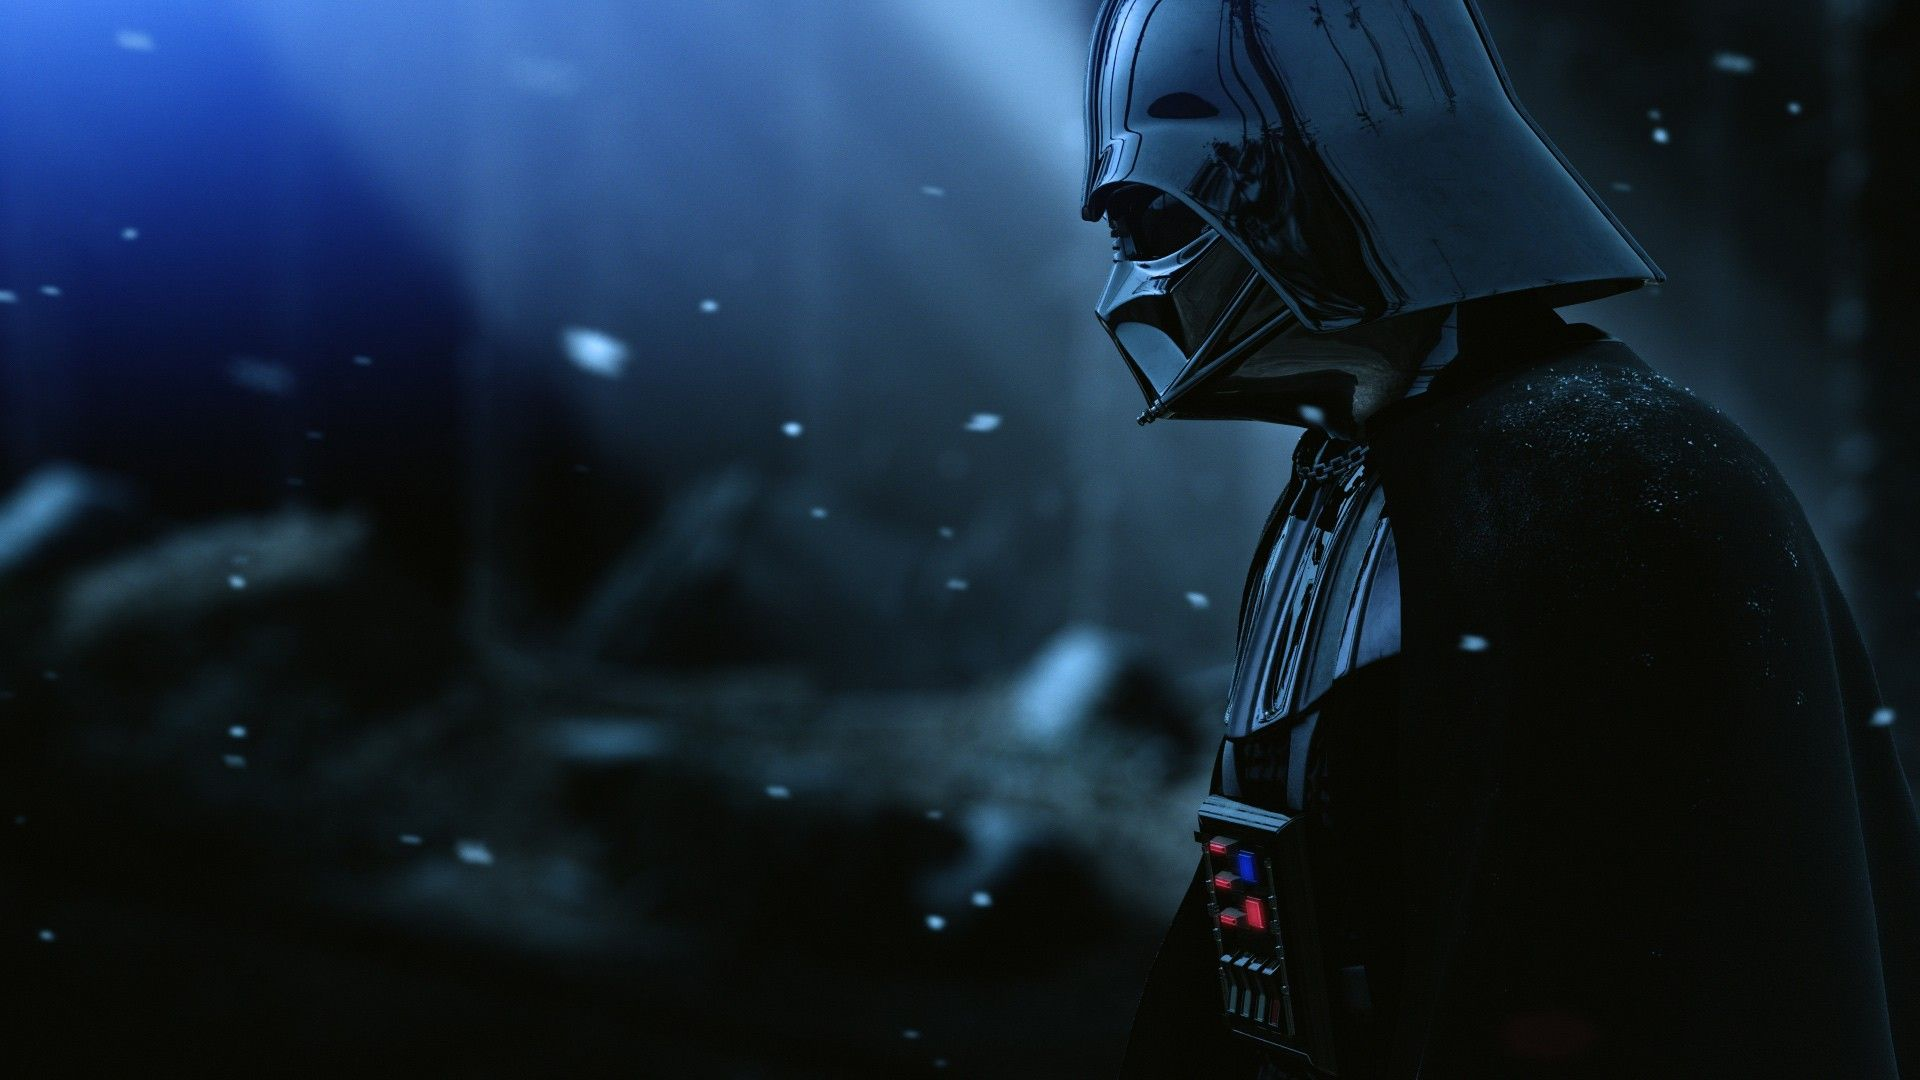 Star Wars Wallpaper 1920x1080